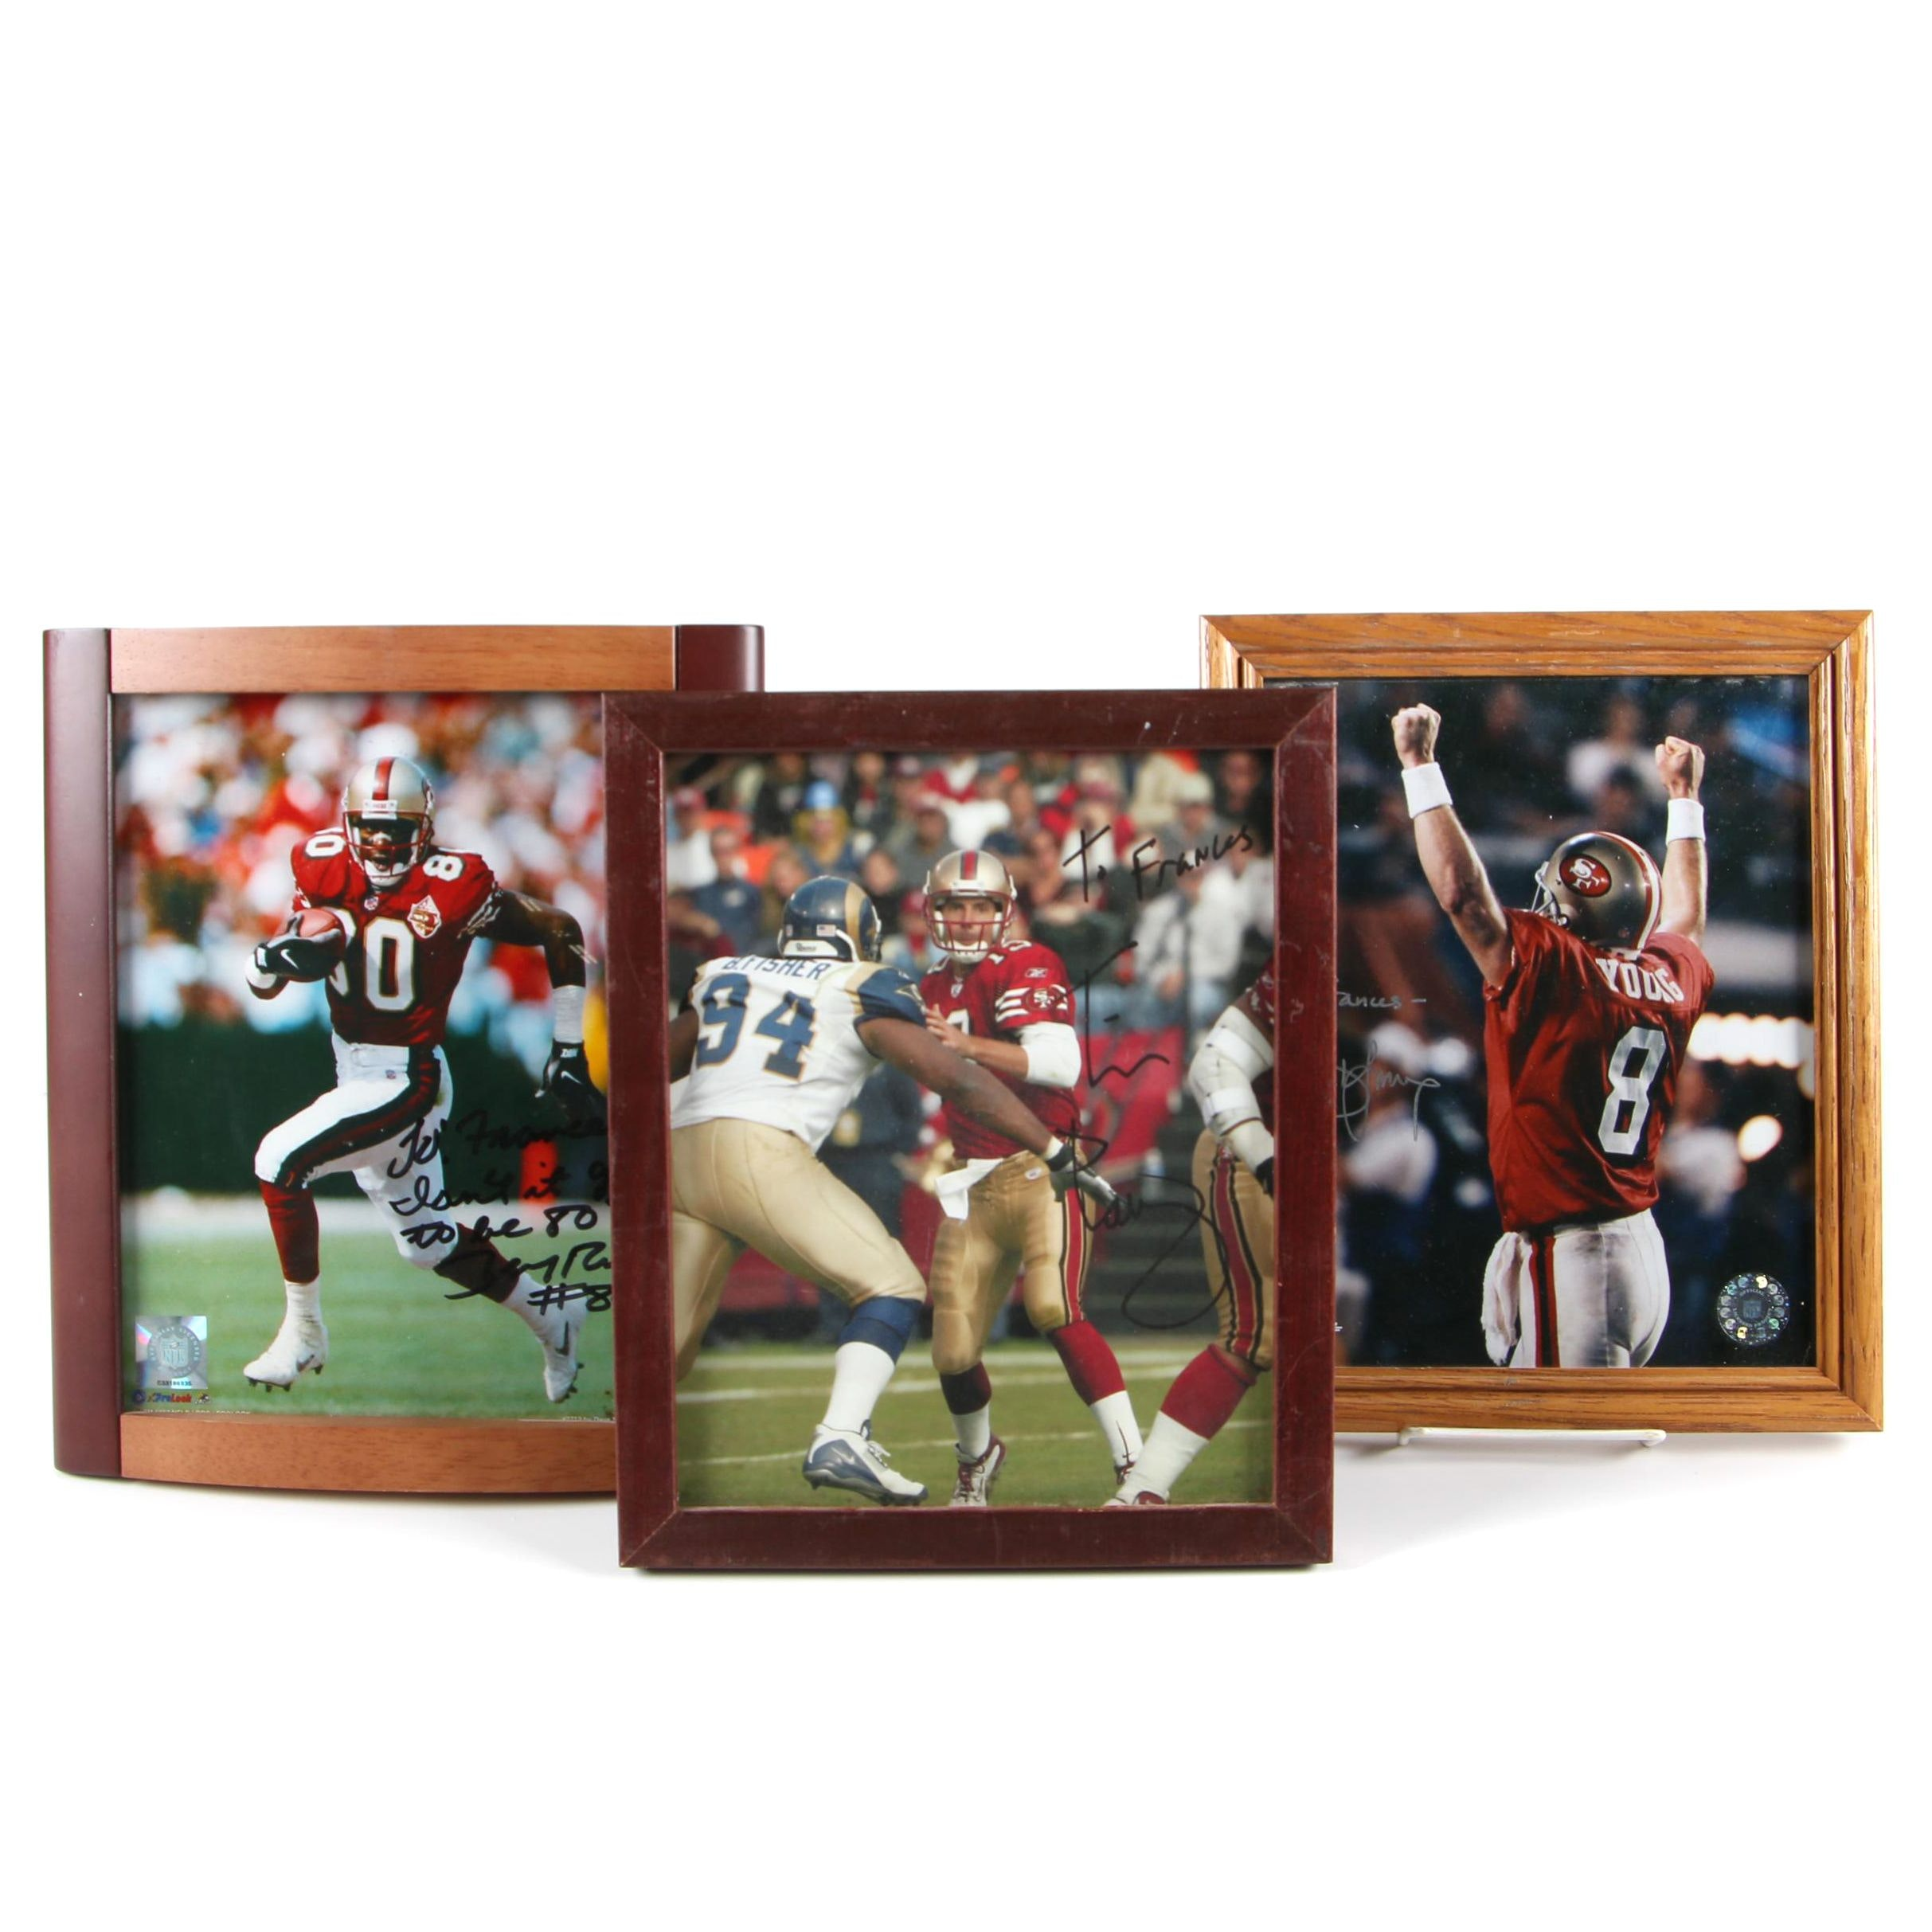 Autographed San Francisco 49ers Photos Including Jerry Rice